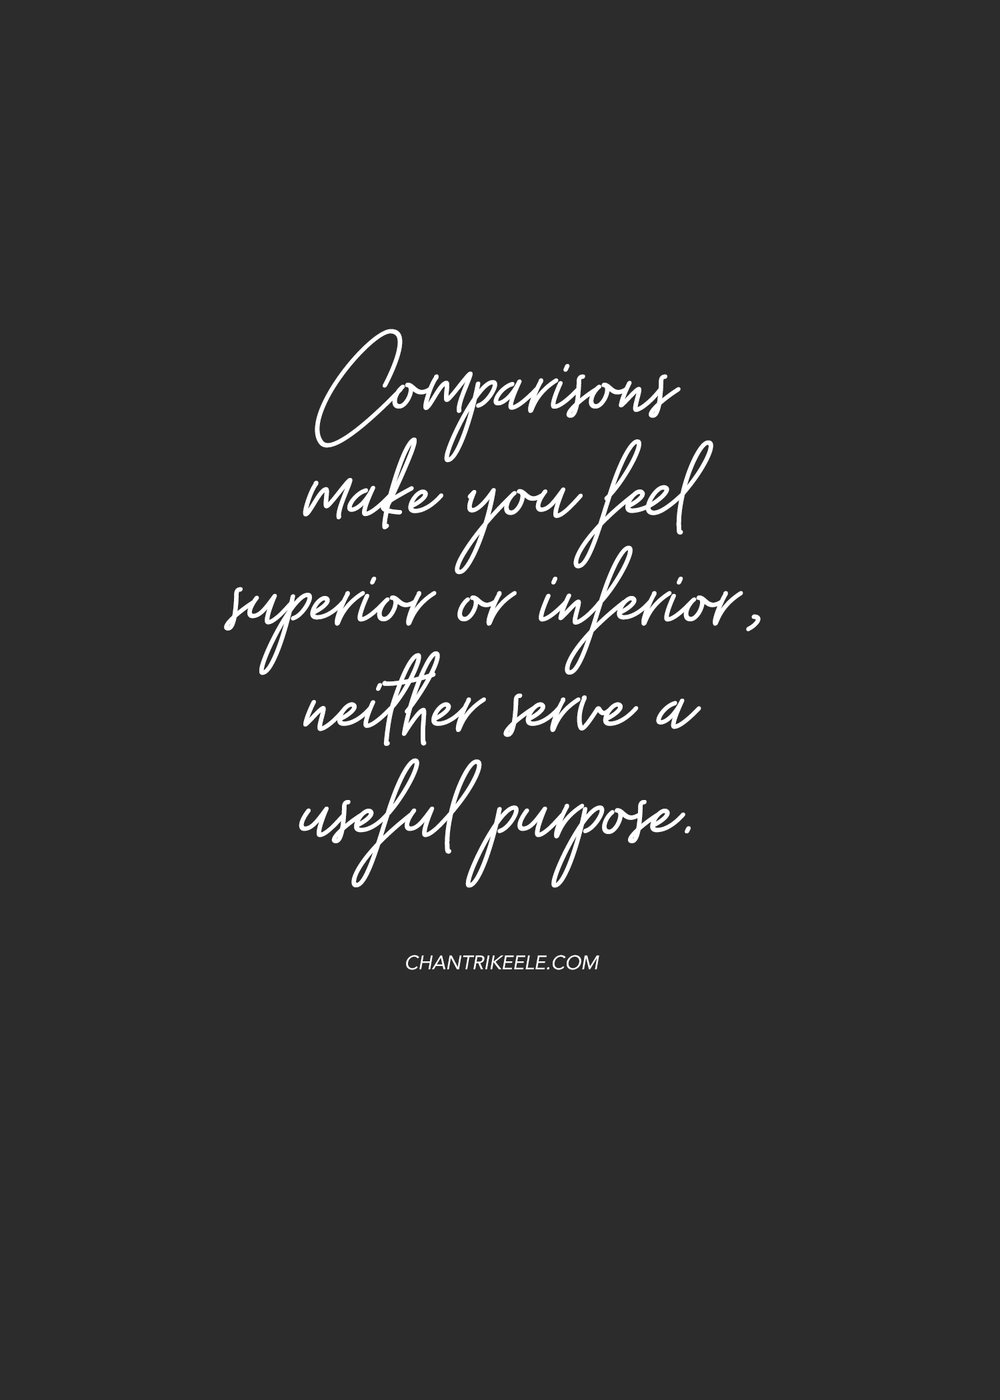 Comparisons make you feel superior or interior neither serve a useful purpose.